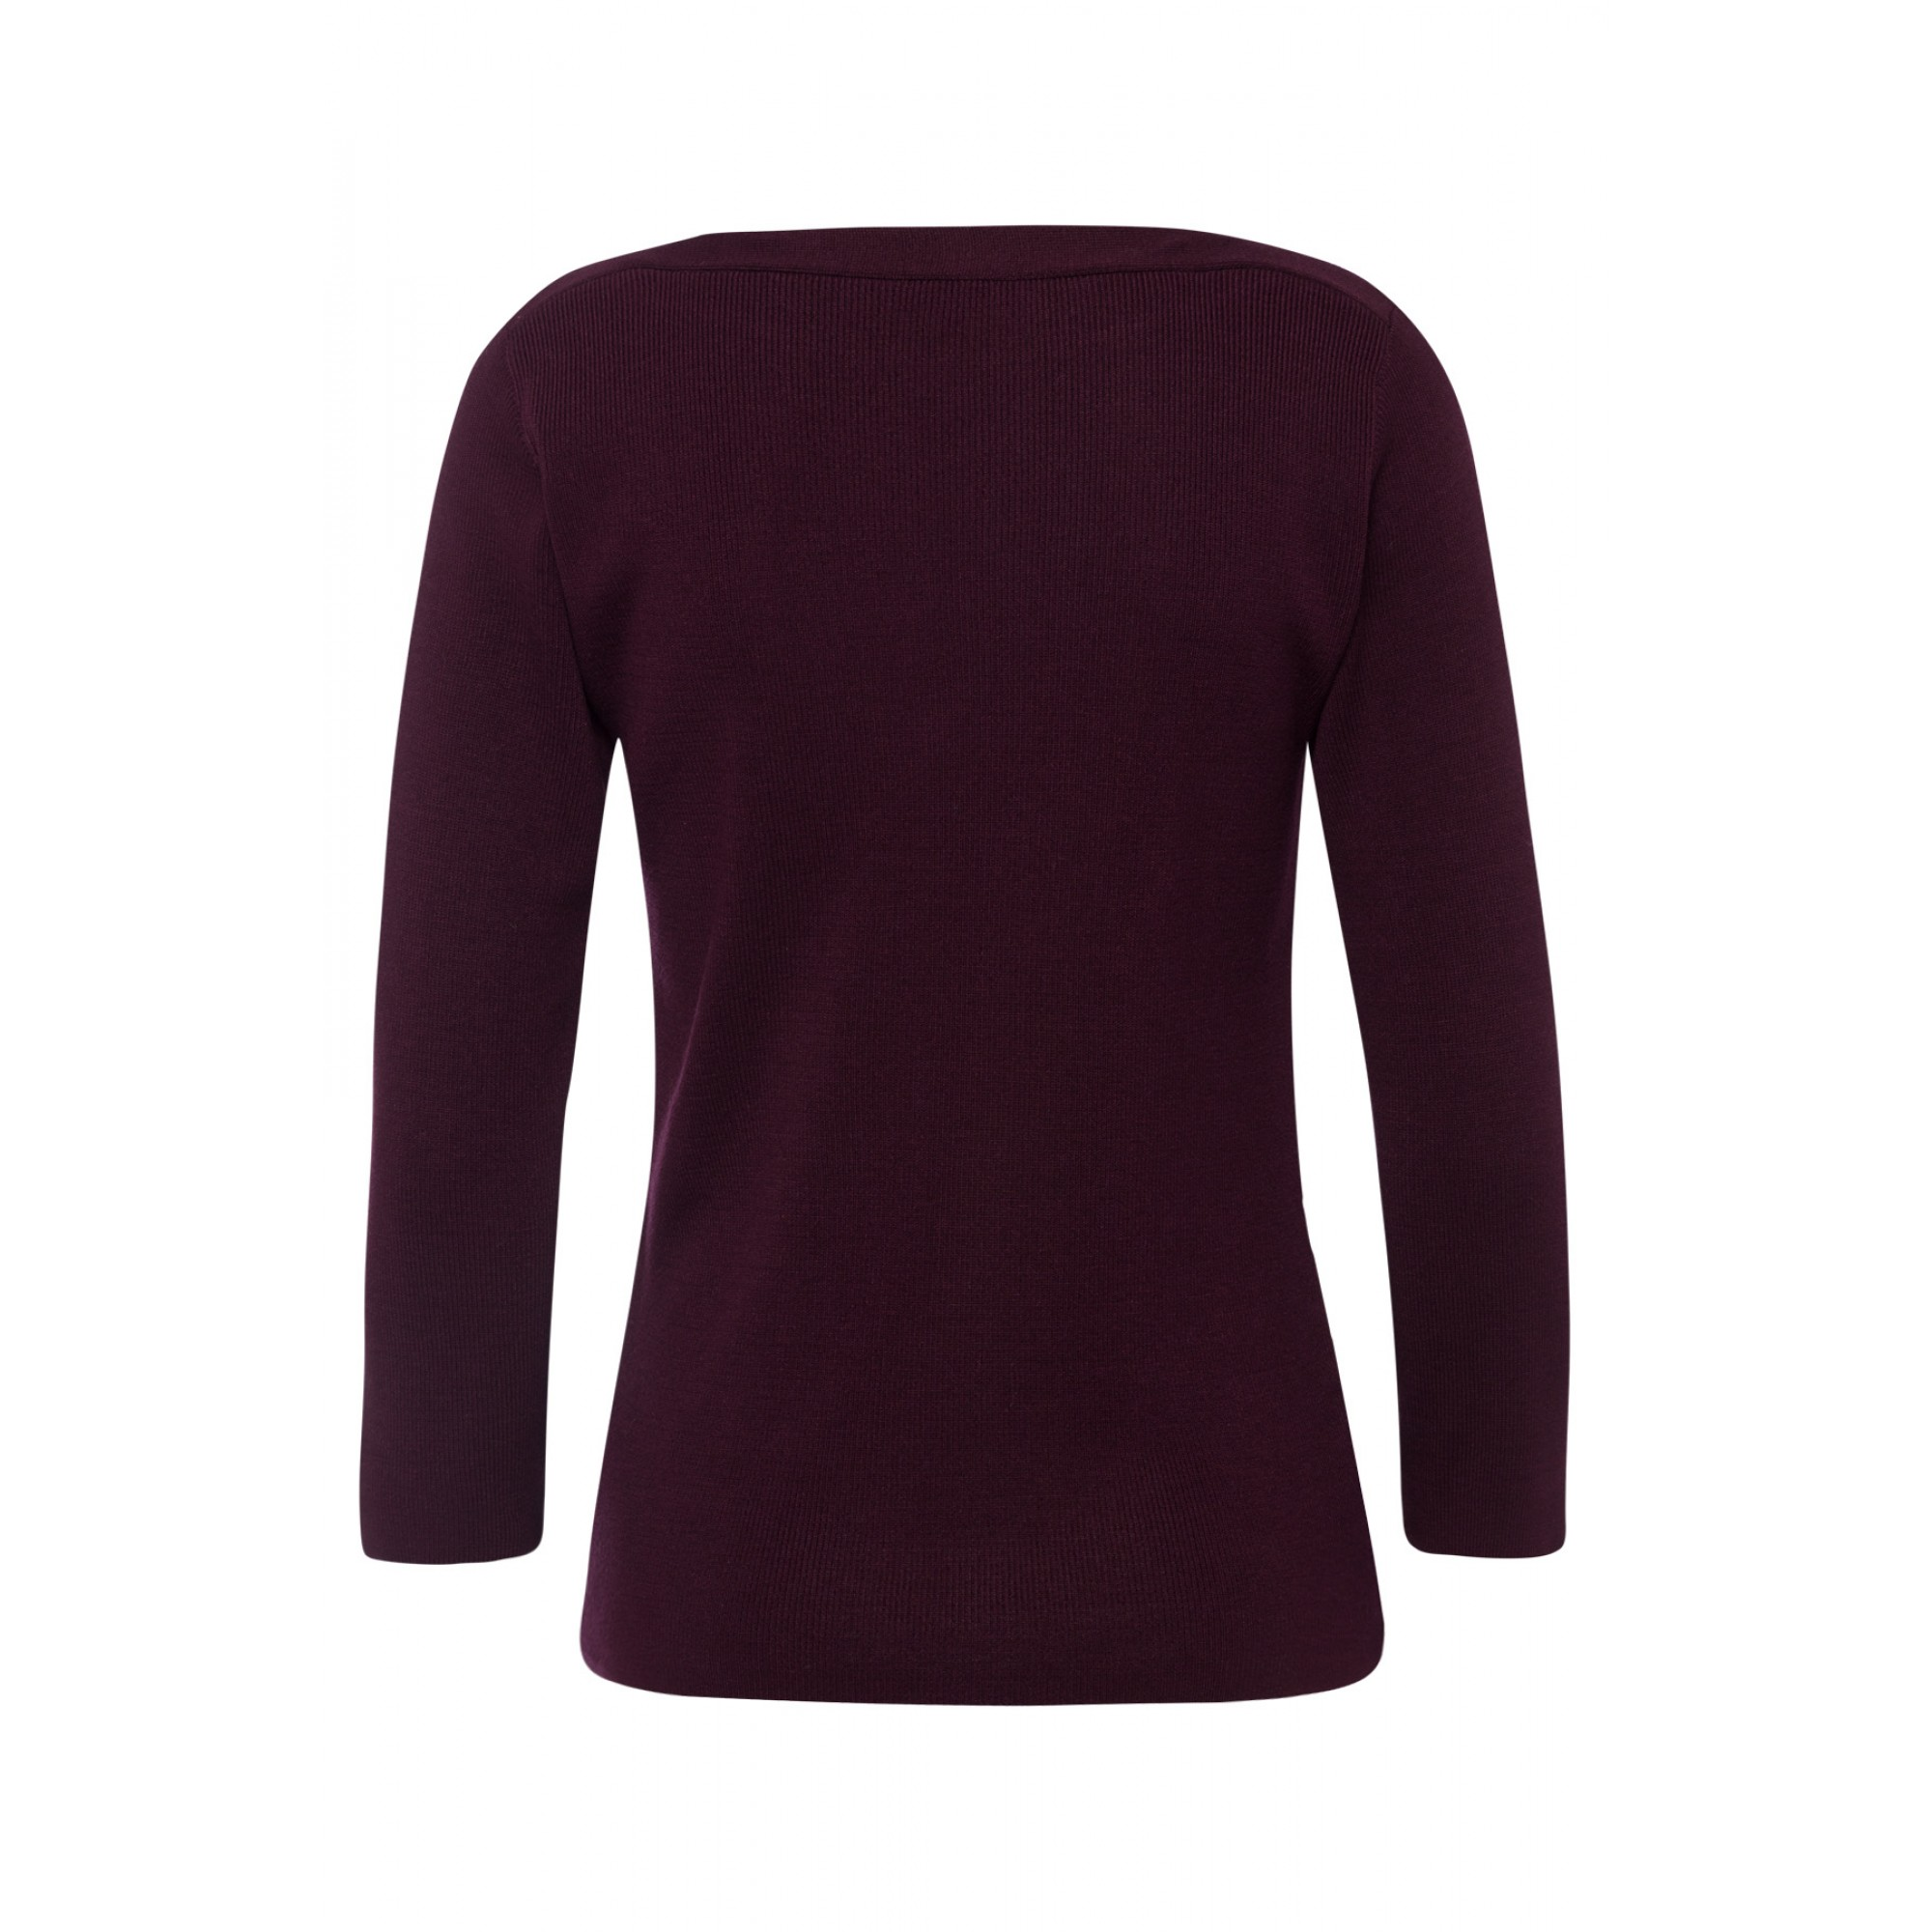 U-Boot Pullover, bordeaux 01961003-0566 2